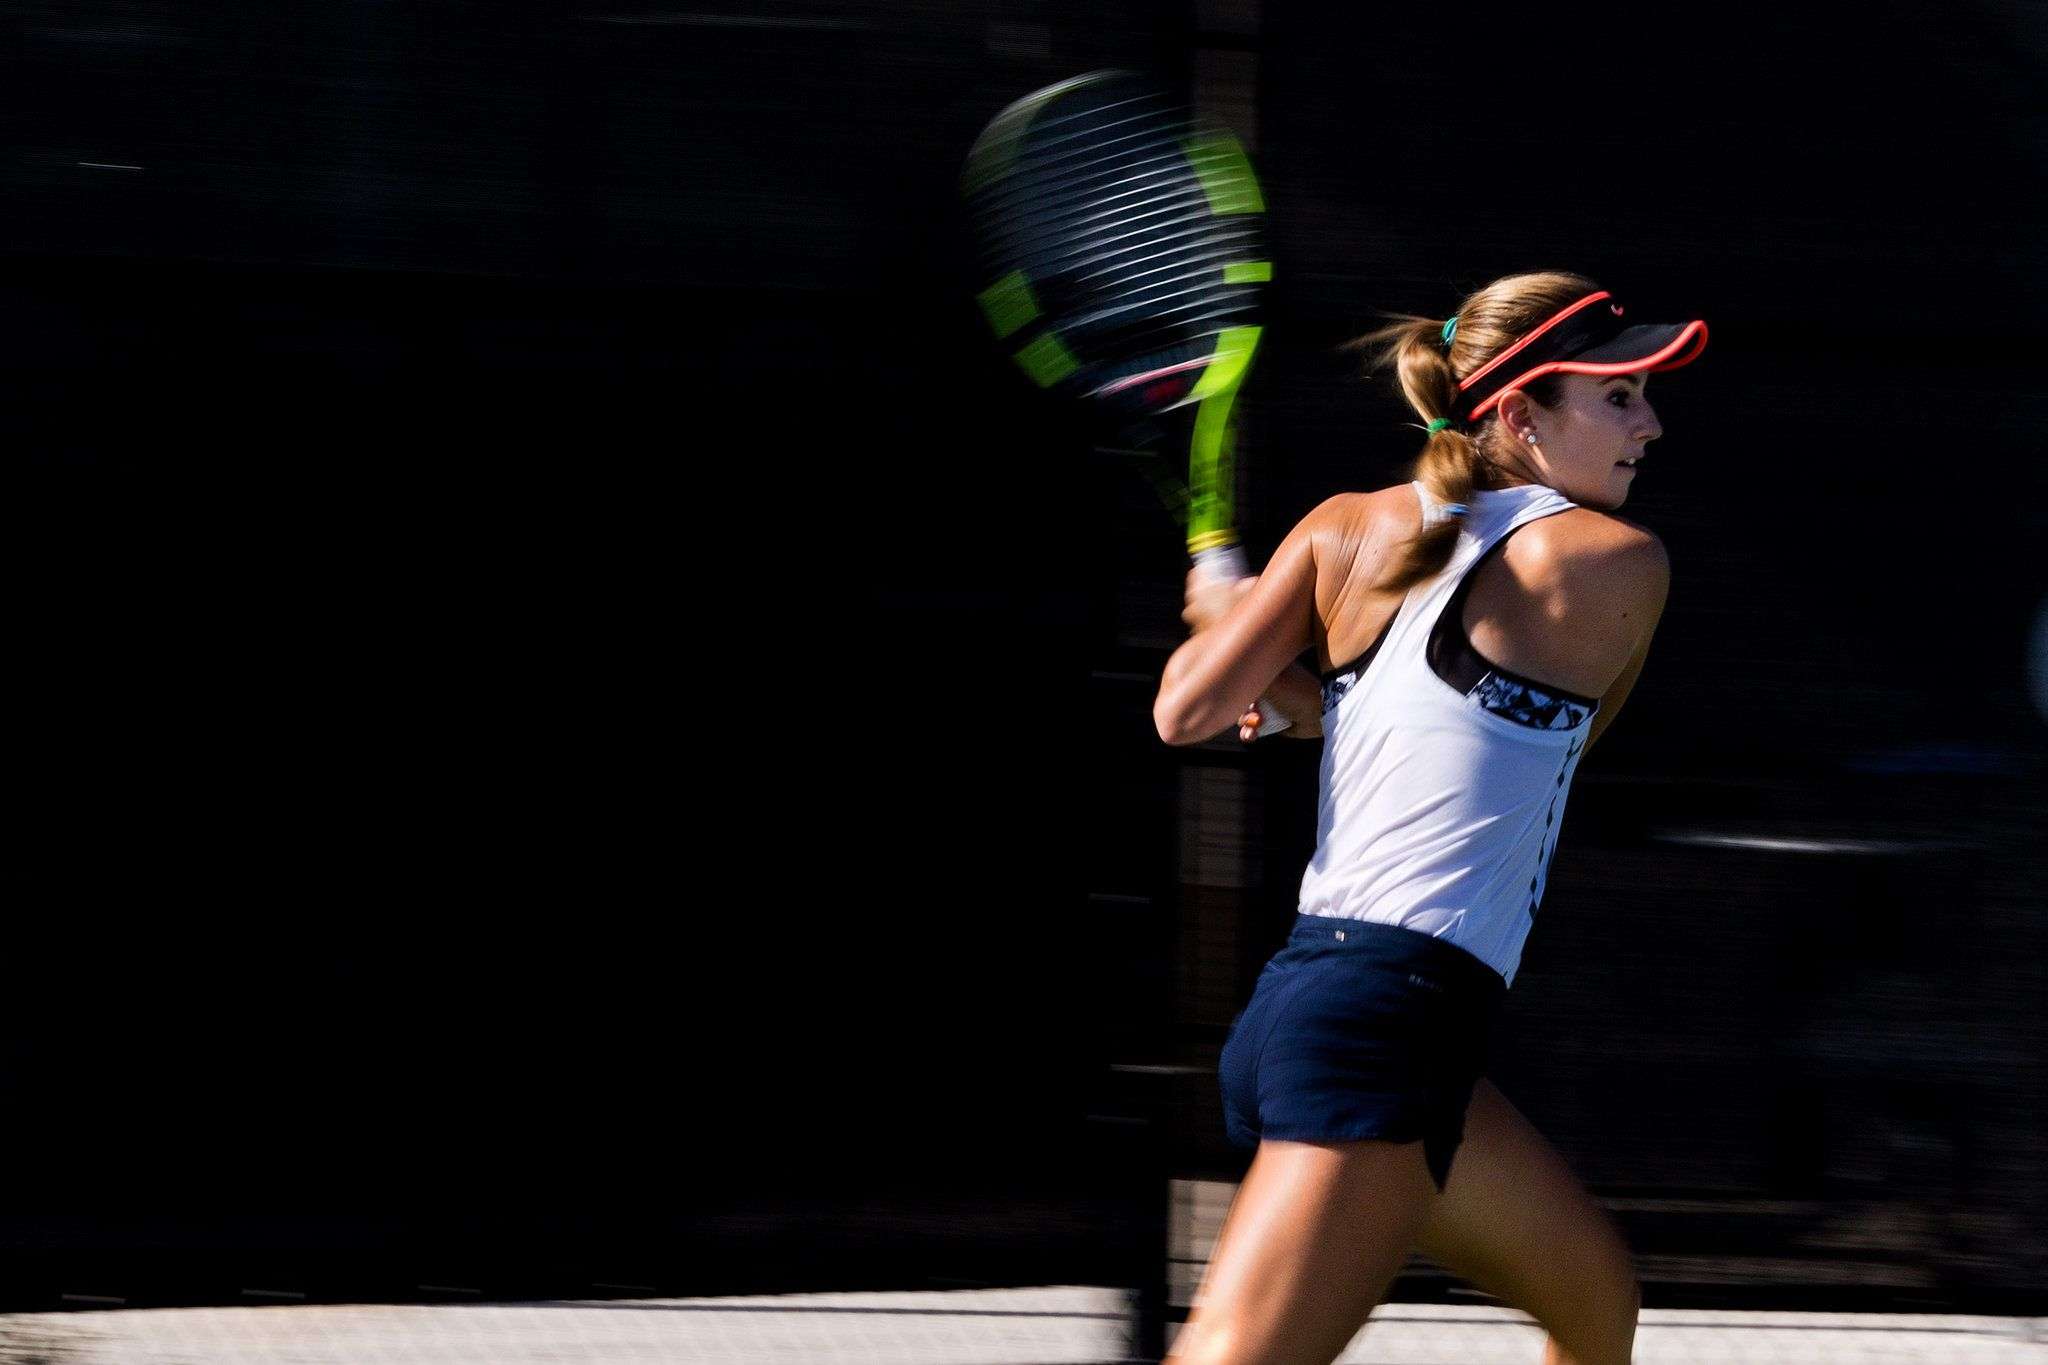 For Cici Bellis A Rising Teenage Star What A Difference A Year Makes Tennis News Players Intense